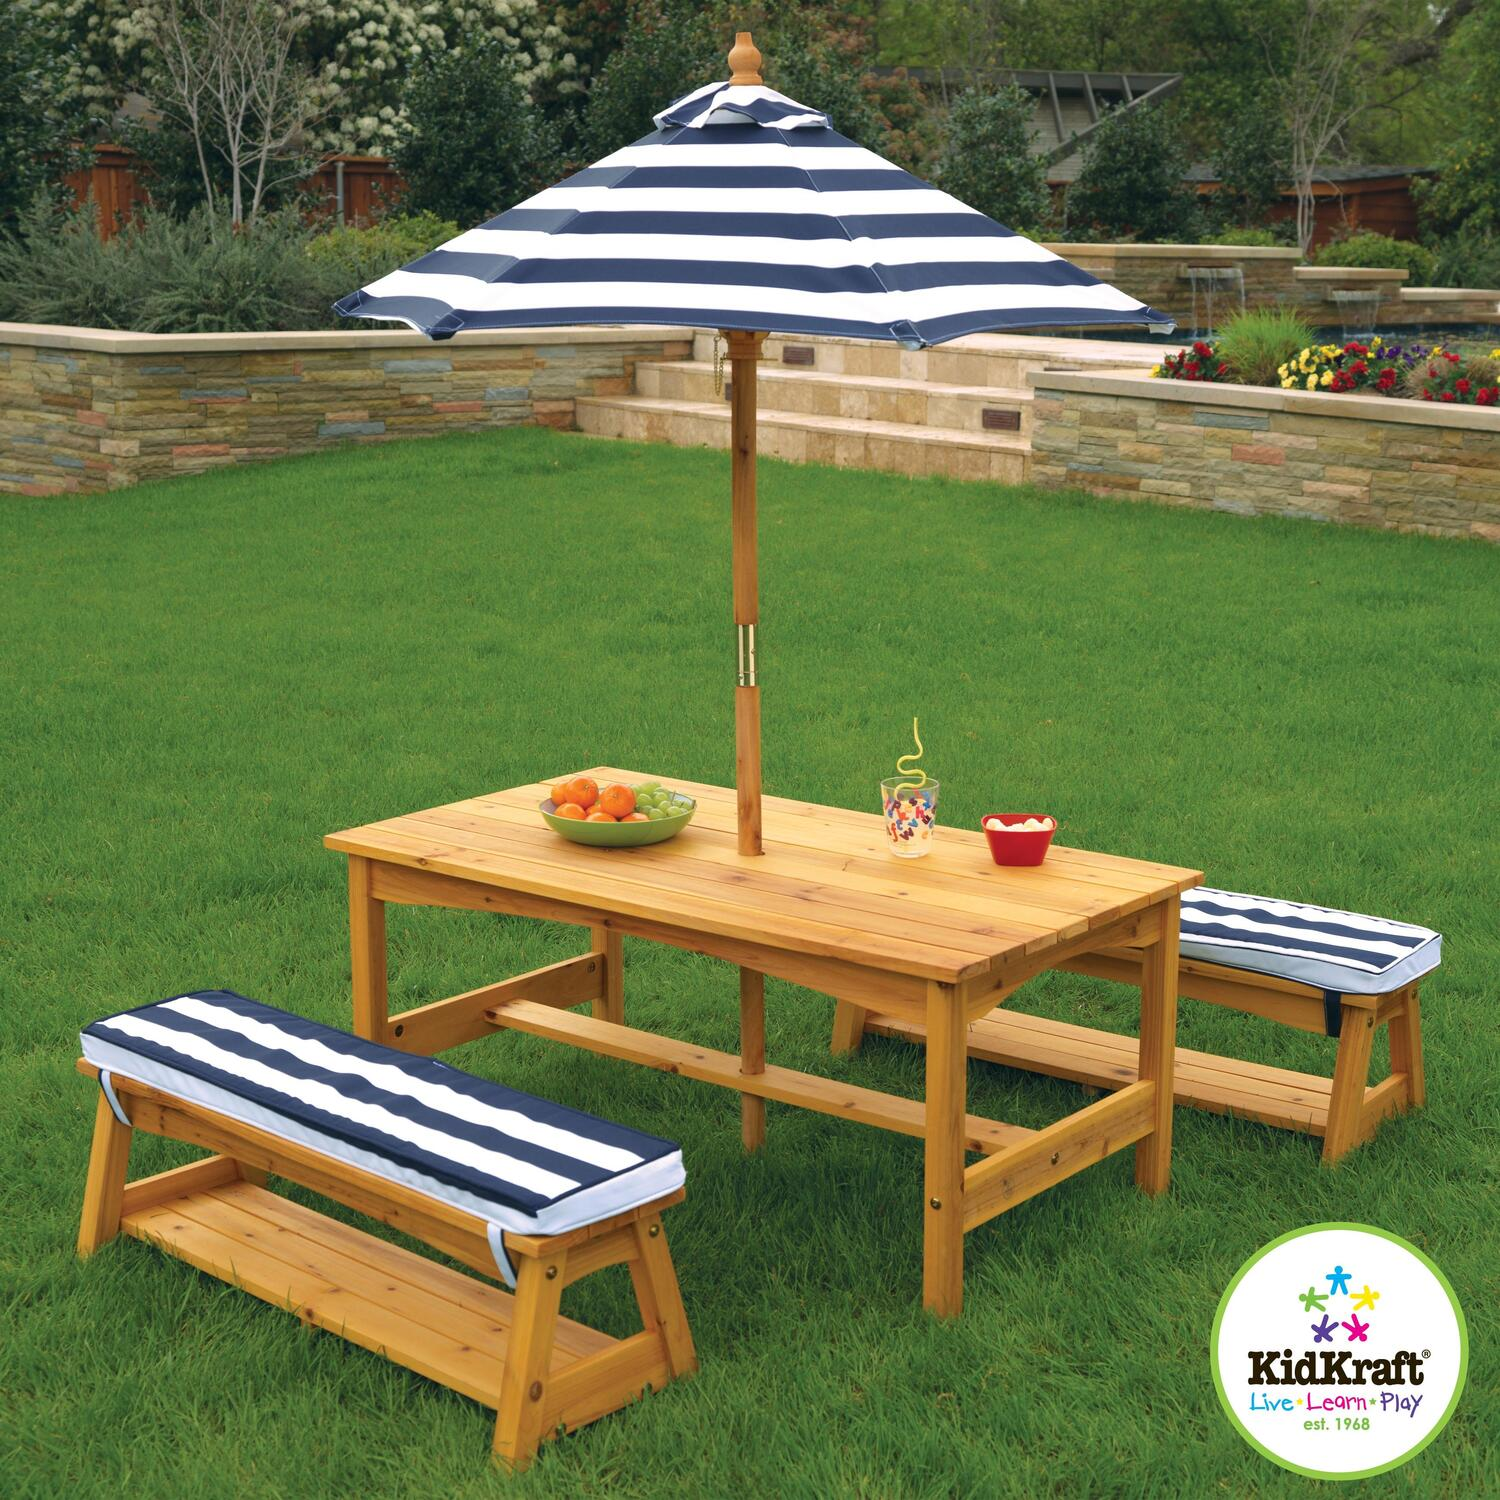 Kidkraft Outdoor Table Amp Bench Set With Cushions Umbrella